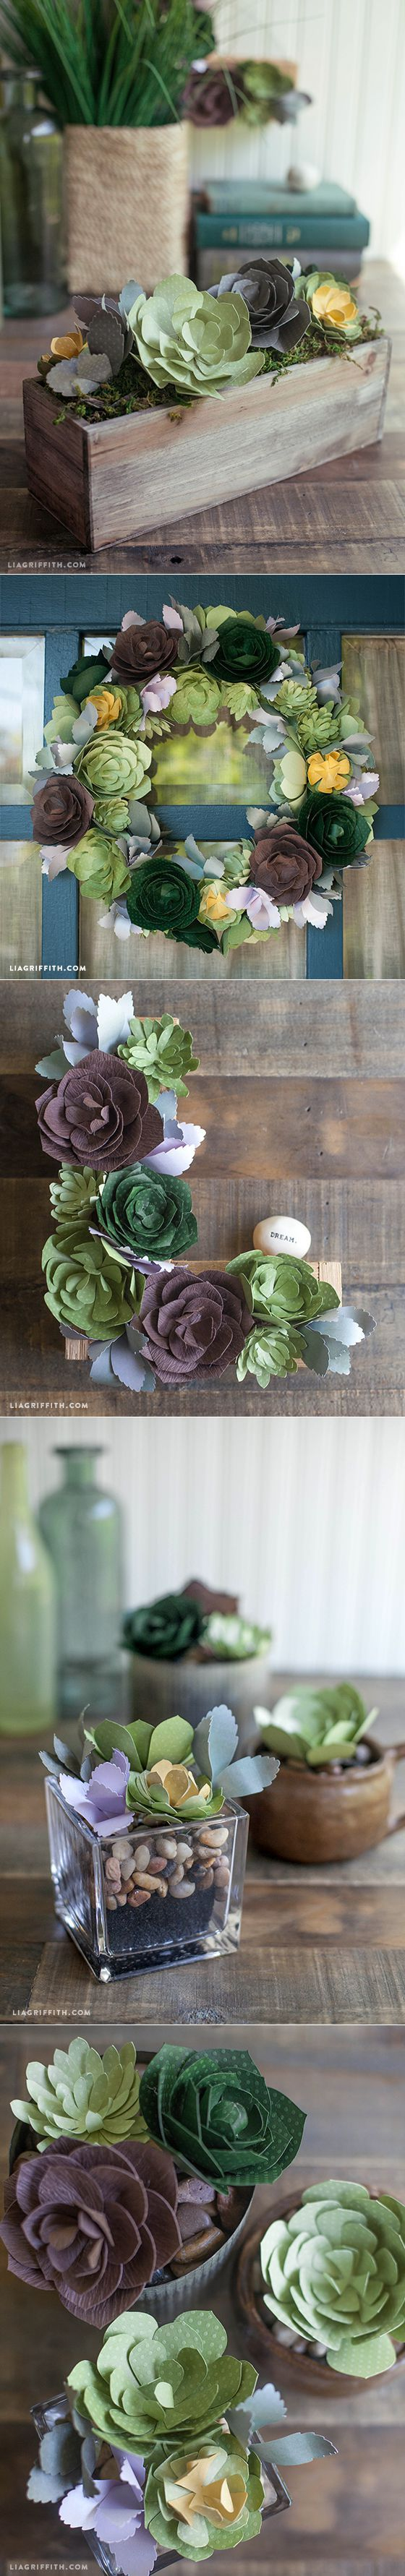 Patterns and Tutorial for Paper Succulents | Суккуленты из бумаги